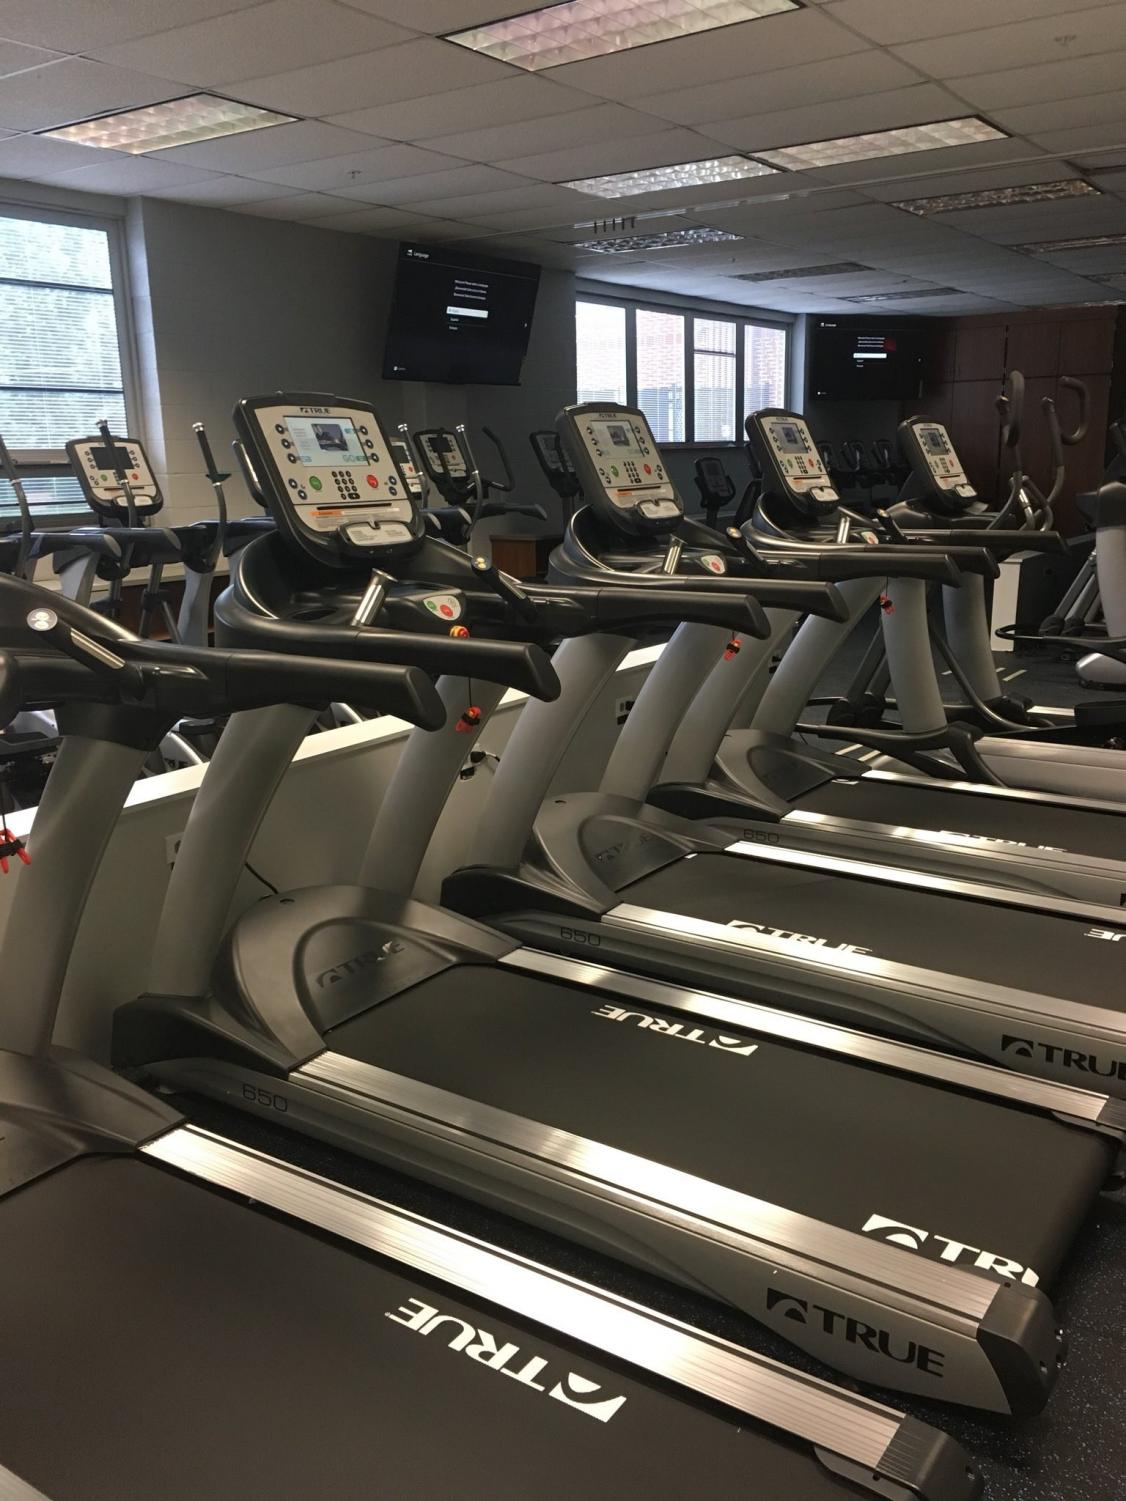 This past summer, Dallastown created a new fitness room in the back gym hallway in the space that was once two health classrooms.  The room is now open to club members during Wildcat Periods to exercise at their own pace.